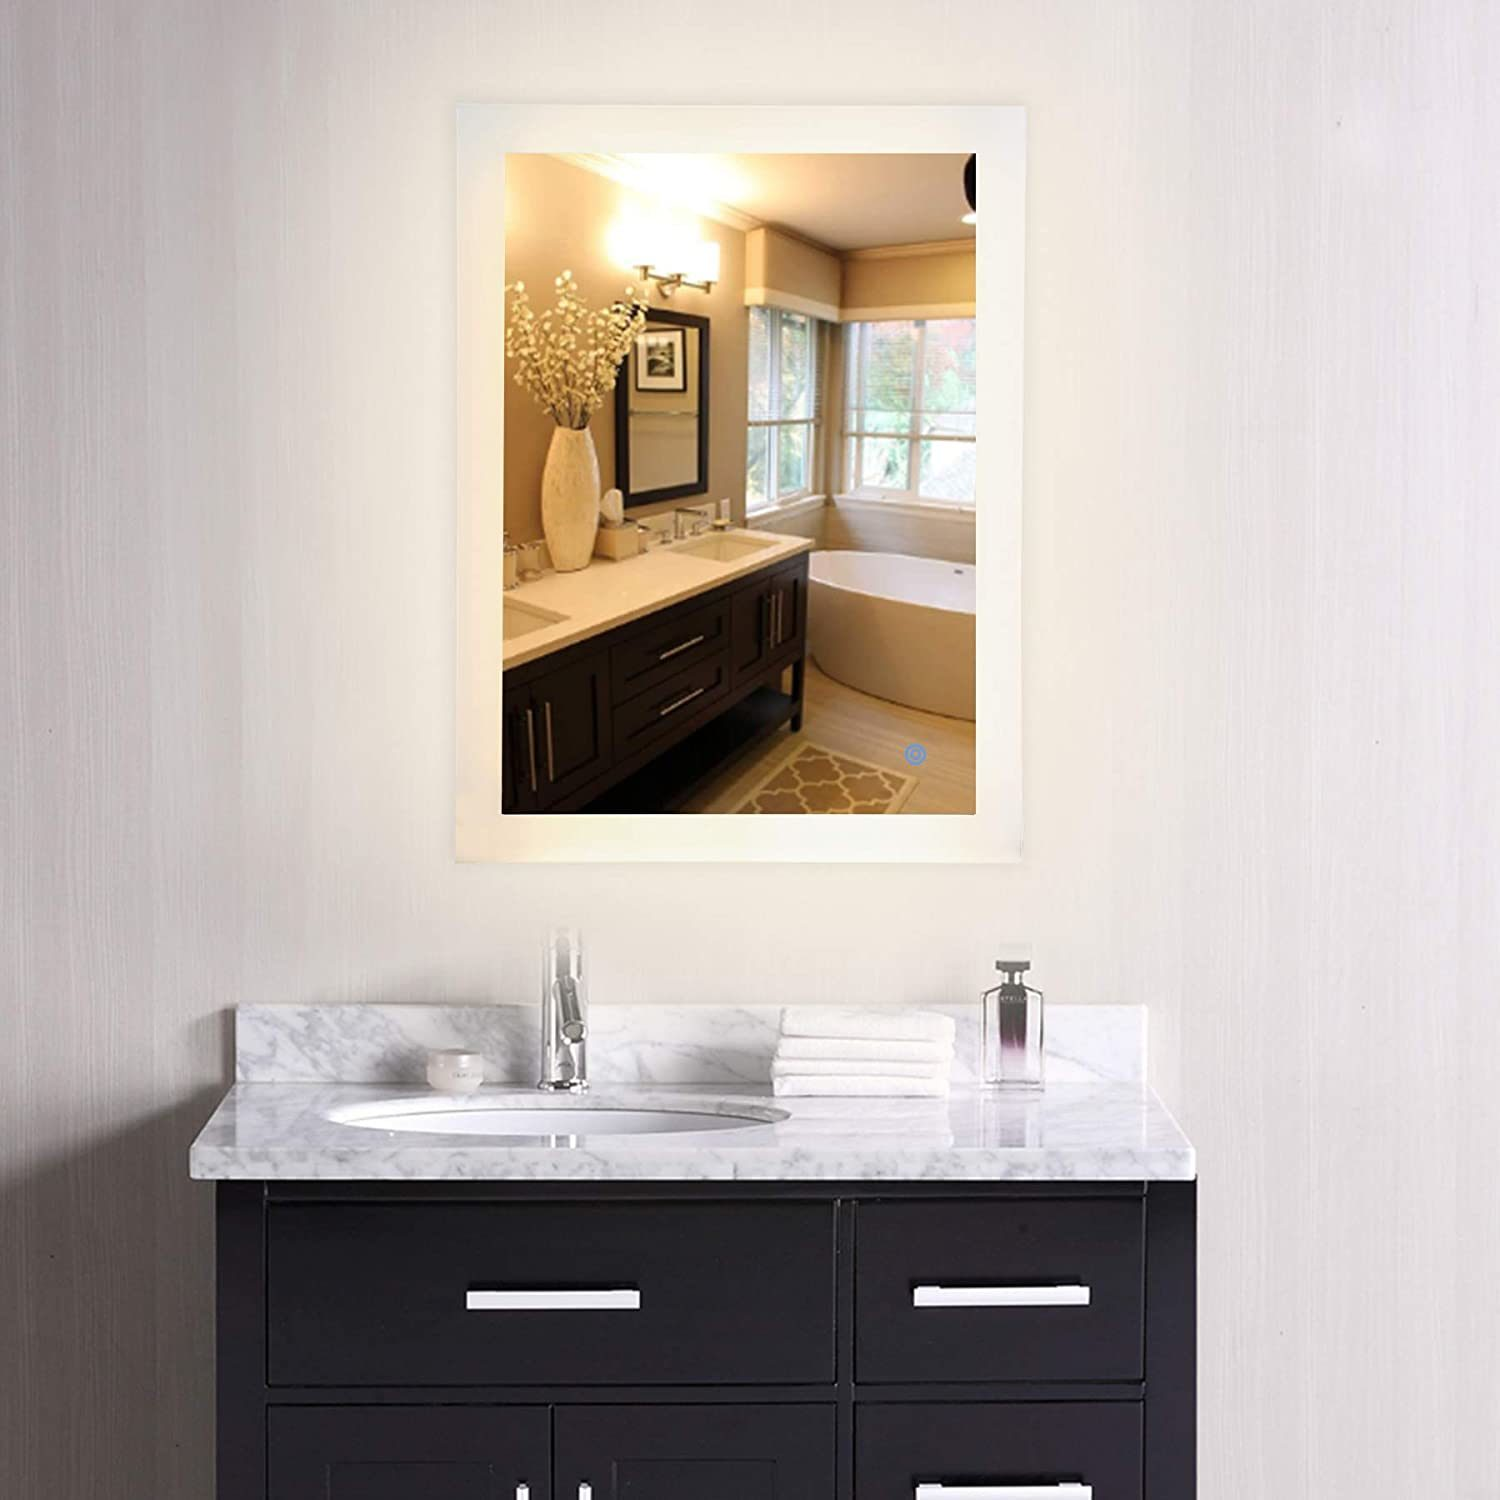 Image of: China Led Lighted Bathroom Wall Mounted Mirror Plug In Modern Rectangle Led Lighted Wall Mirror With Lights Contemporary Fog Free Vanity Cosmetic Backlit Touch Bath Photos Pictures Made In China Com